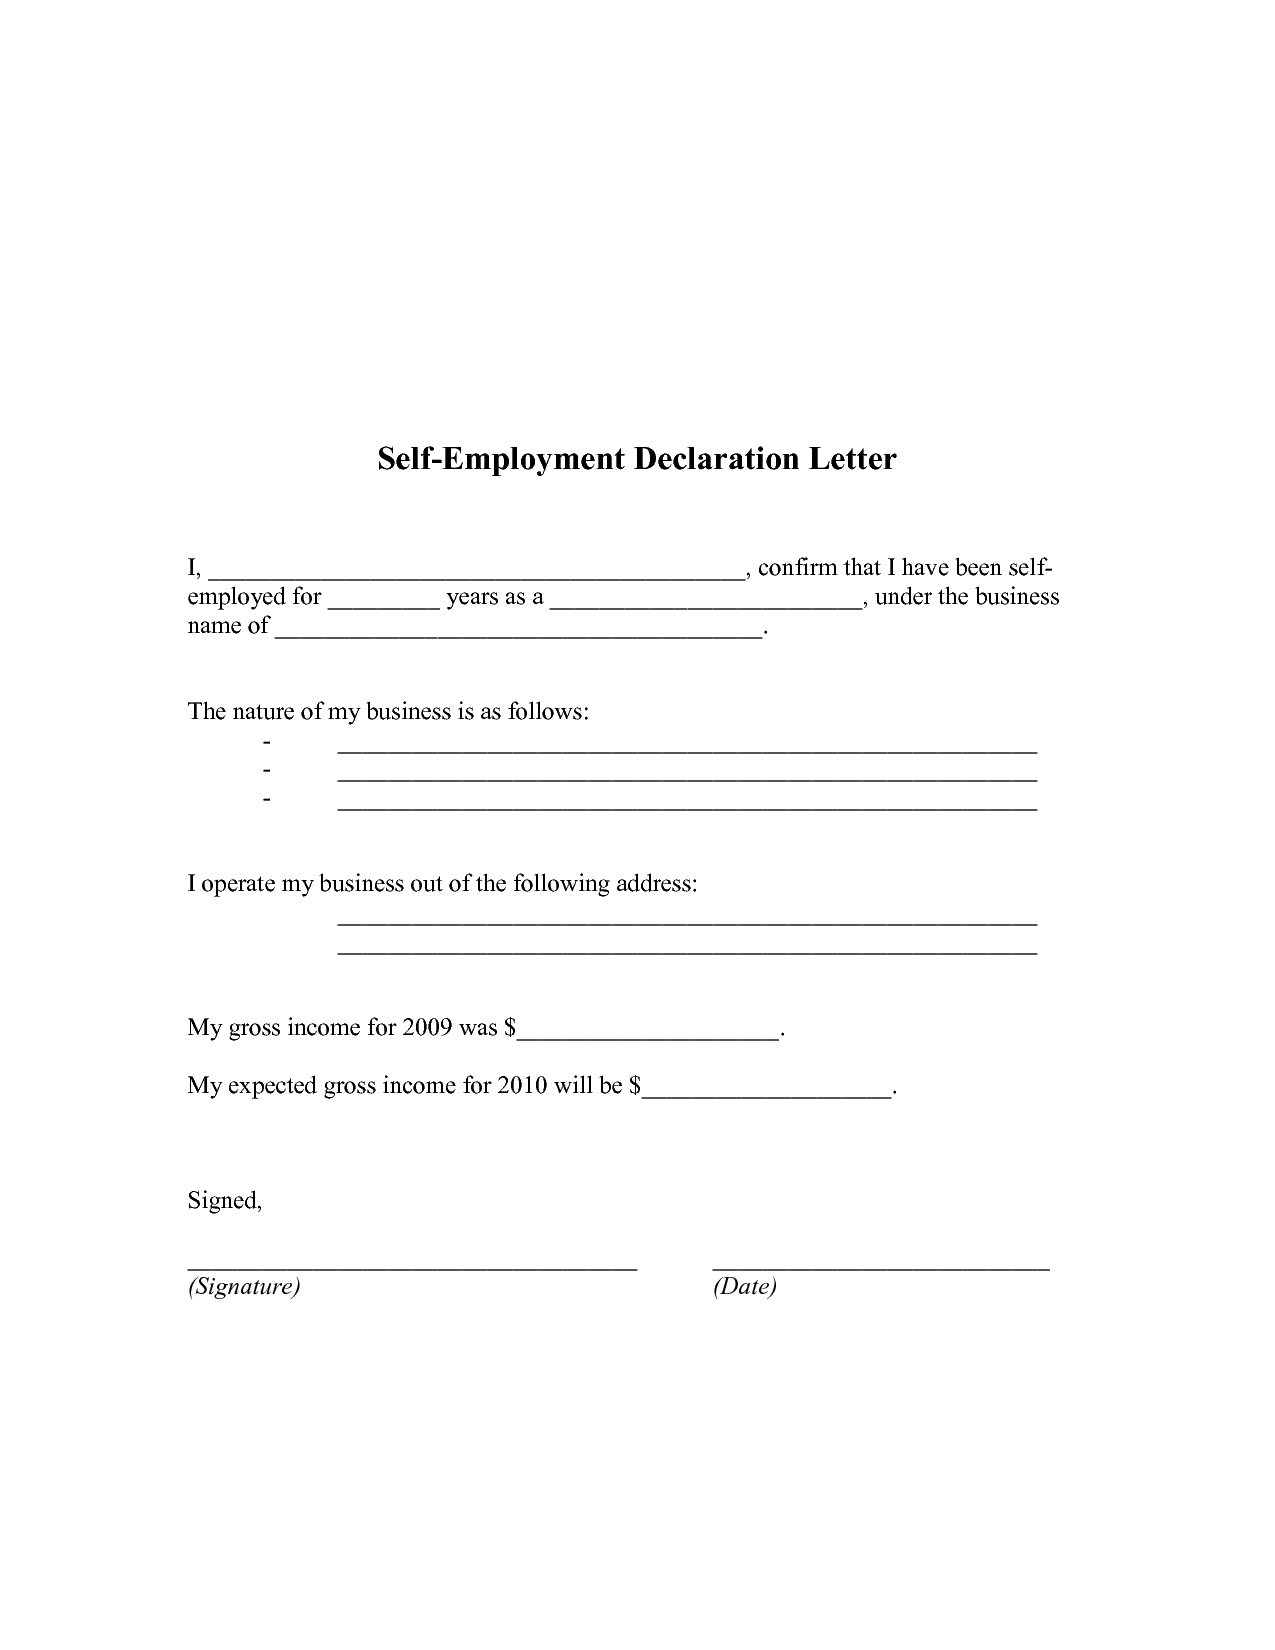 self employed letter - Employment Proof Letter